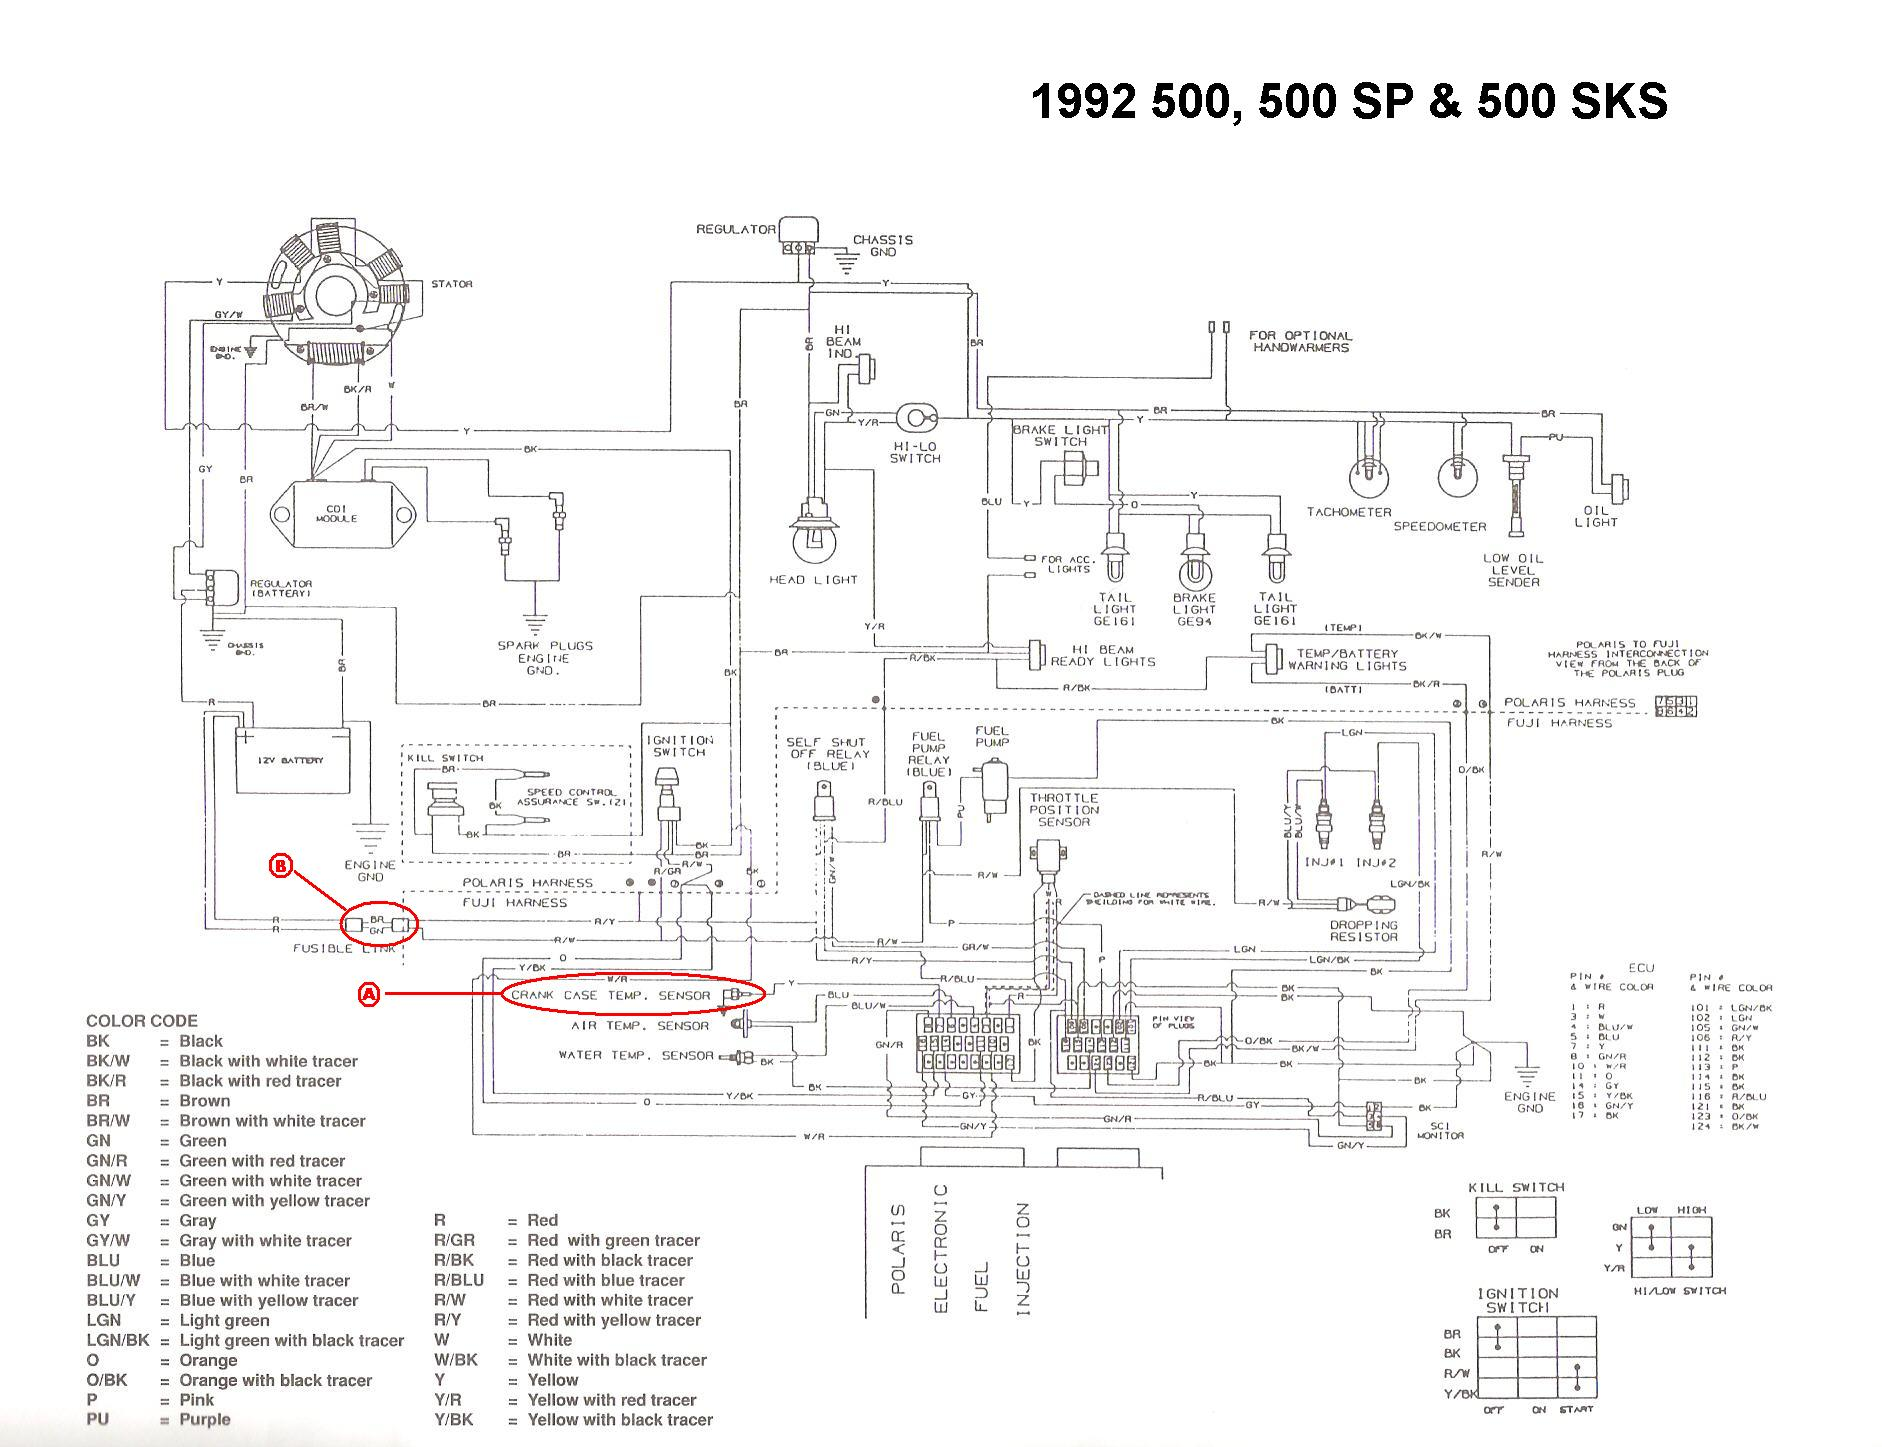 Thread 91 Indy 500 Wiring Diagram - WIRE Center • on polaris indy engine, polaris indy parts diagram, suzuki lt80 wiring diagram, polaris indy fuel pump, polaris indy fuel gauge, polaris indy oil pump, polaris indy ignition system, yamaha raptor wiring diagram, yamaha srx wiring diagram,